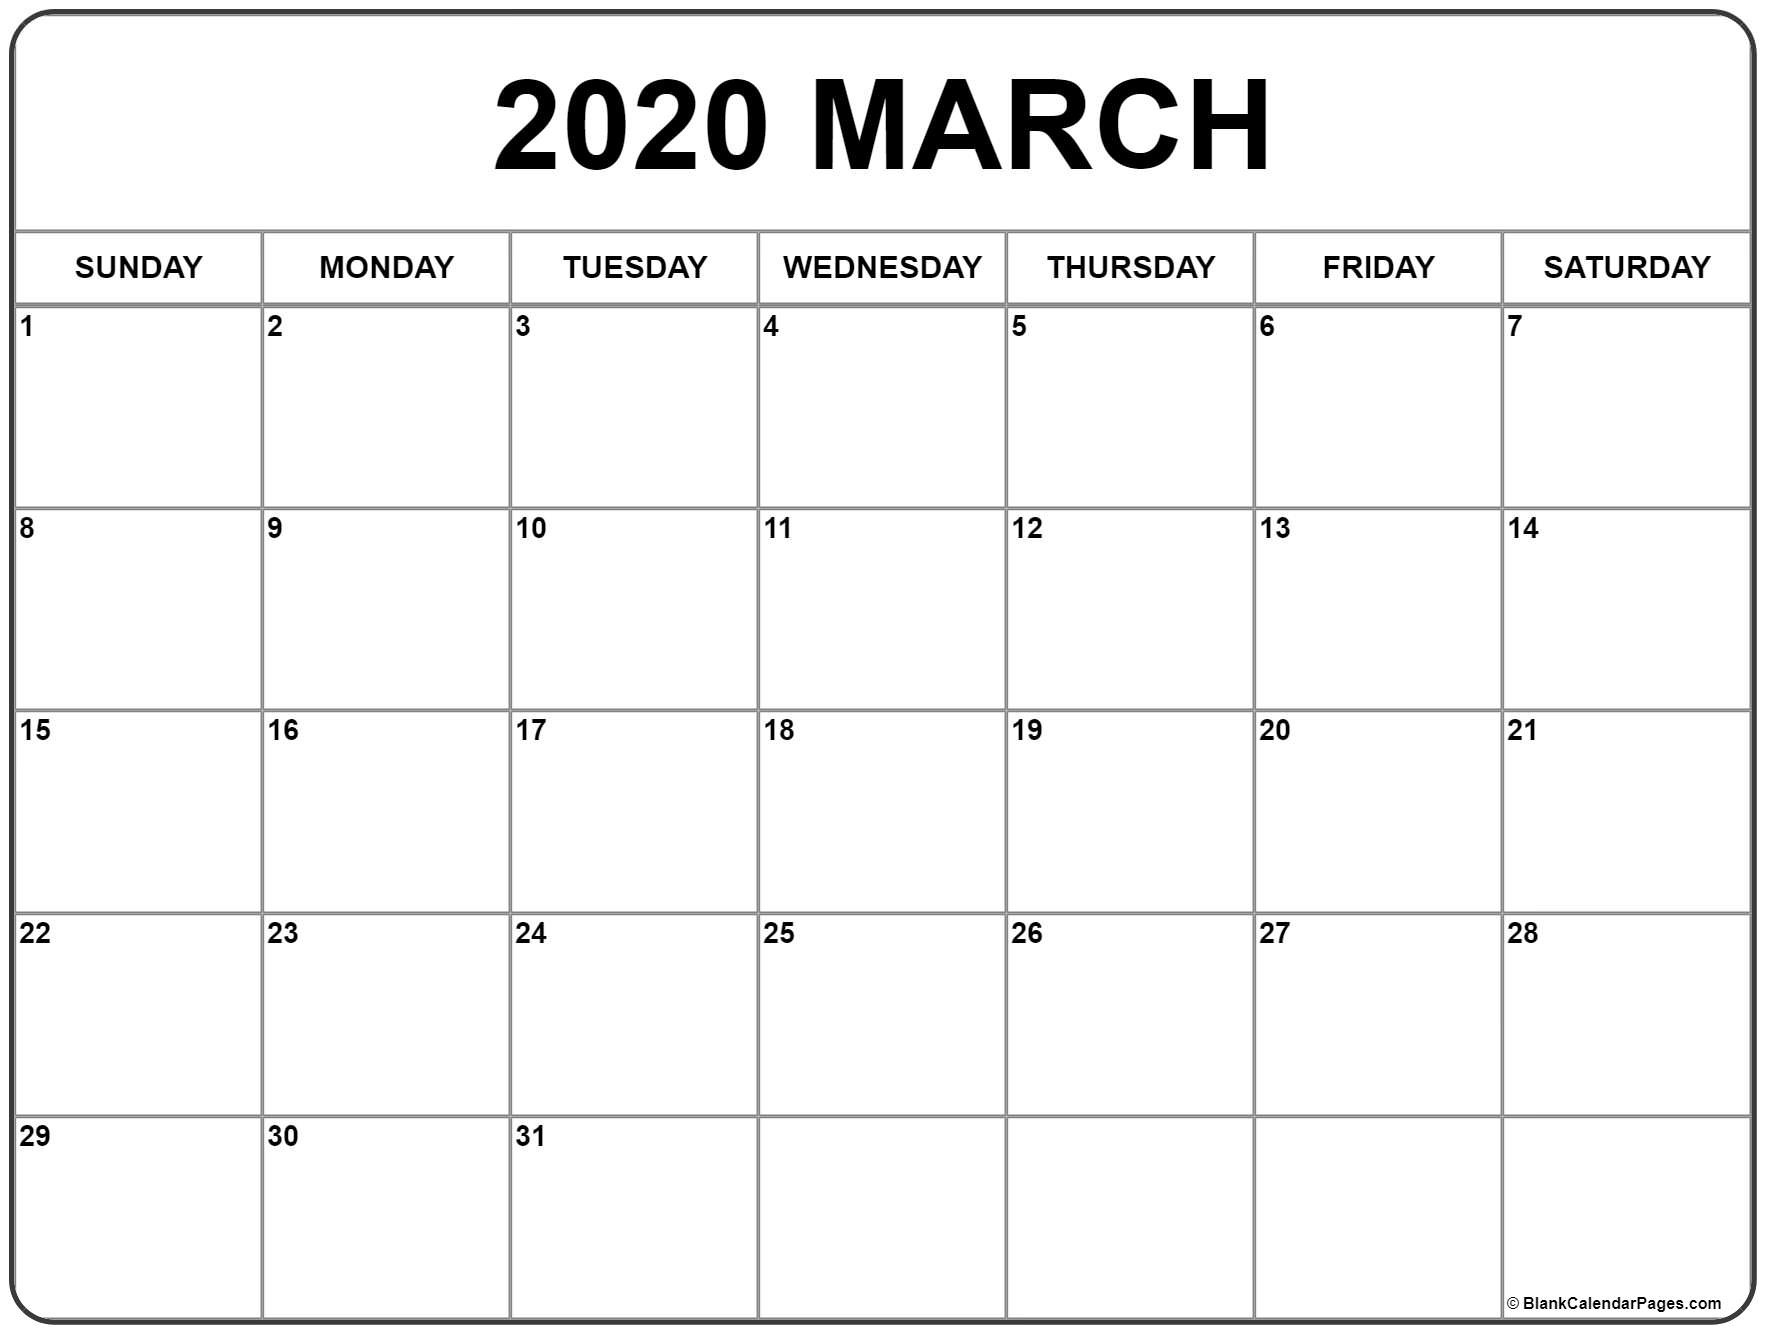 March 2020 Calendar | Free Printable Monthly Calendars  Calendar Printable 2020